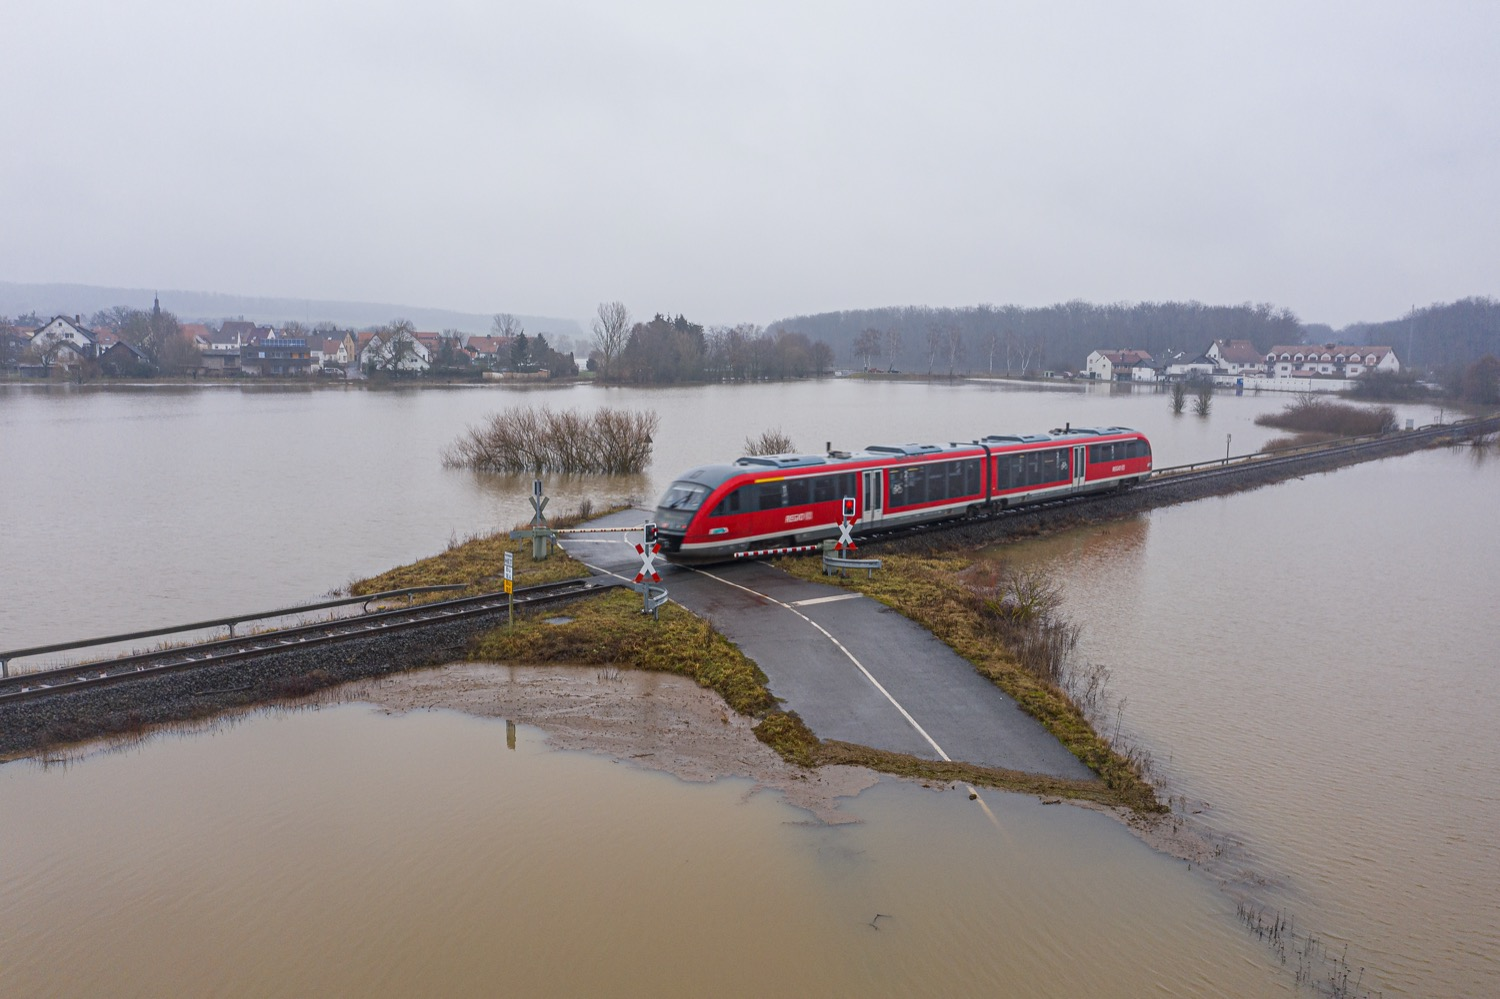 a small train passes over a flooded landscape, with a road partially submerged